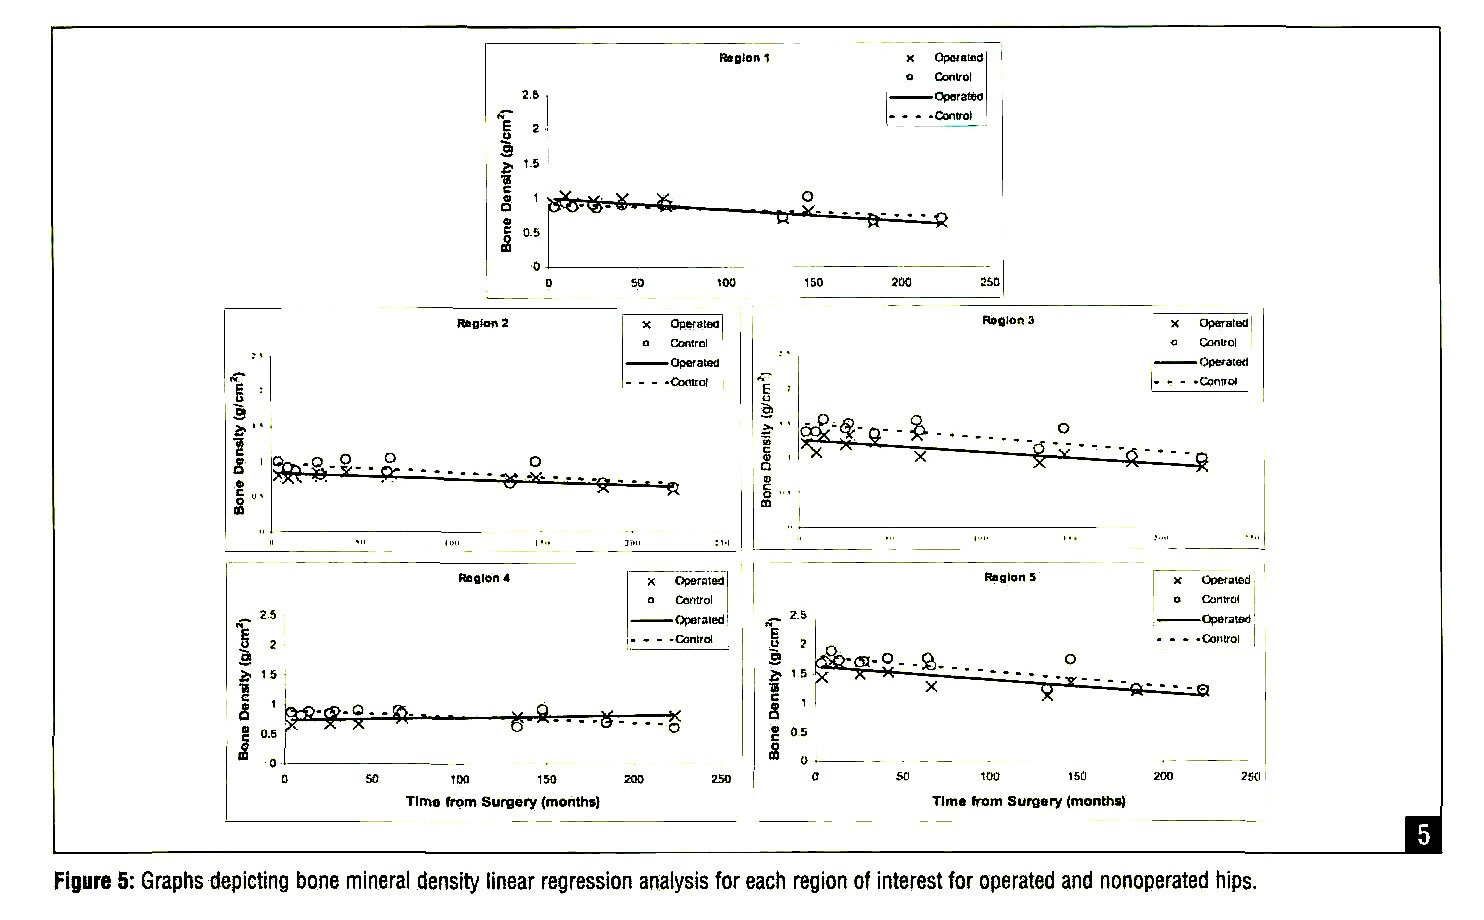 Figure 5: Graphs depicting bone mineral density linear regression analysis for each region of interest for operated and nonoperated hips.